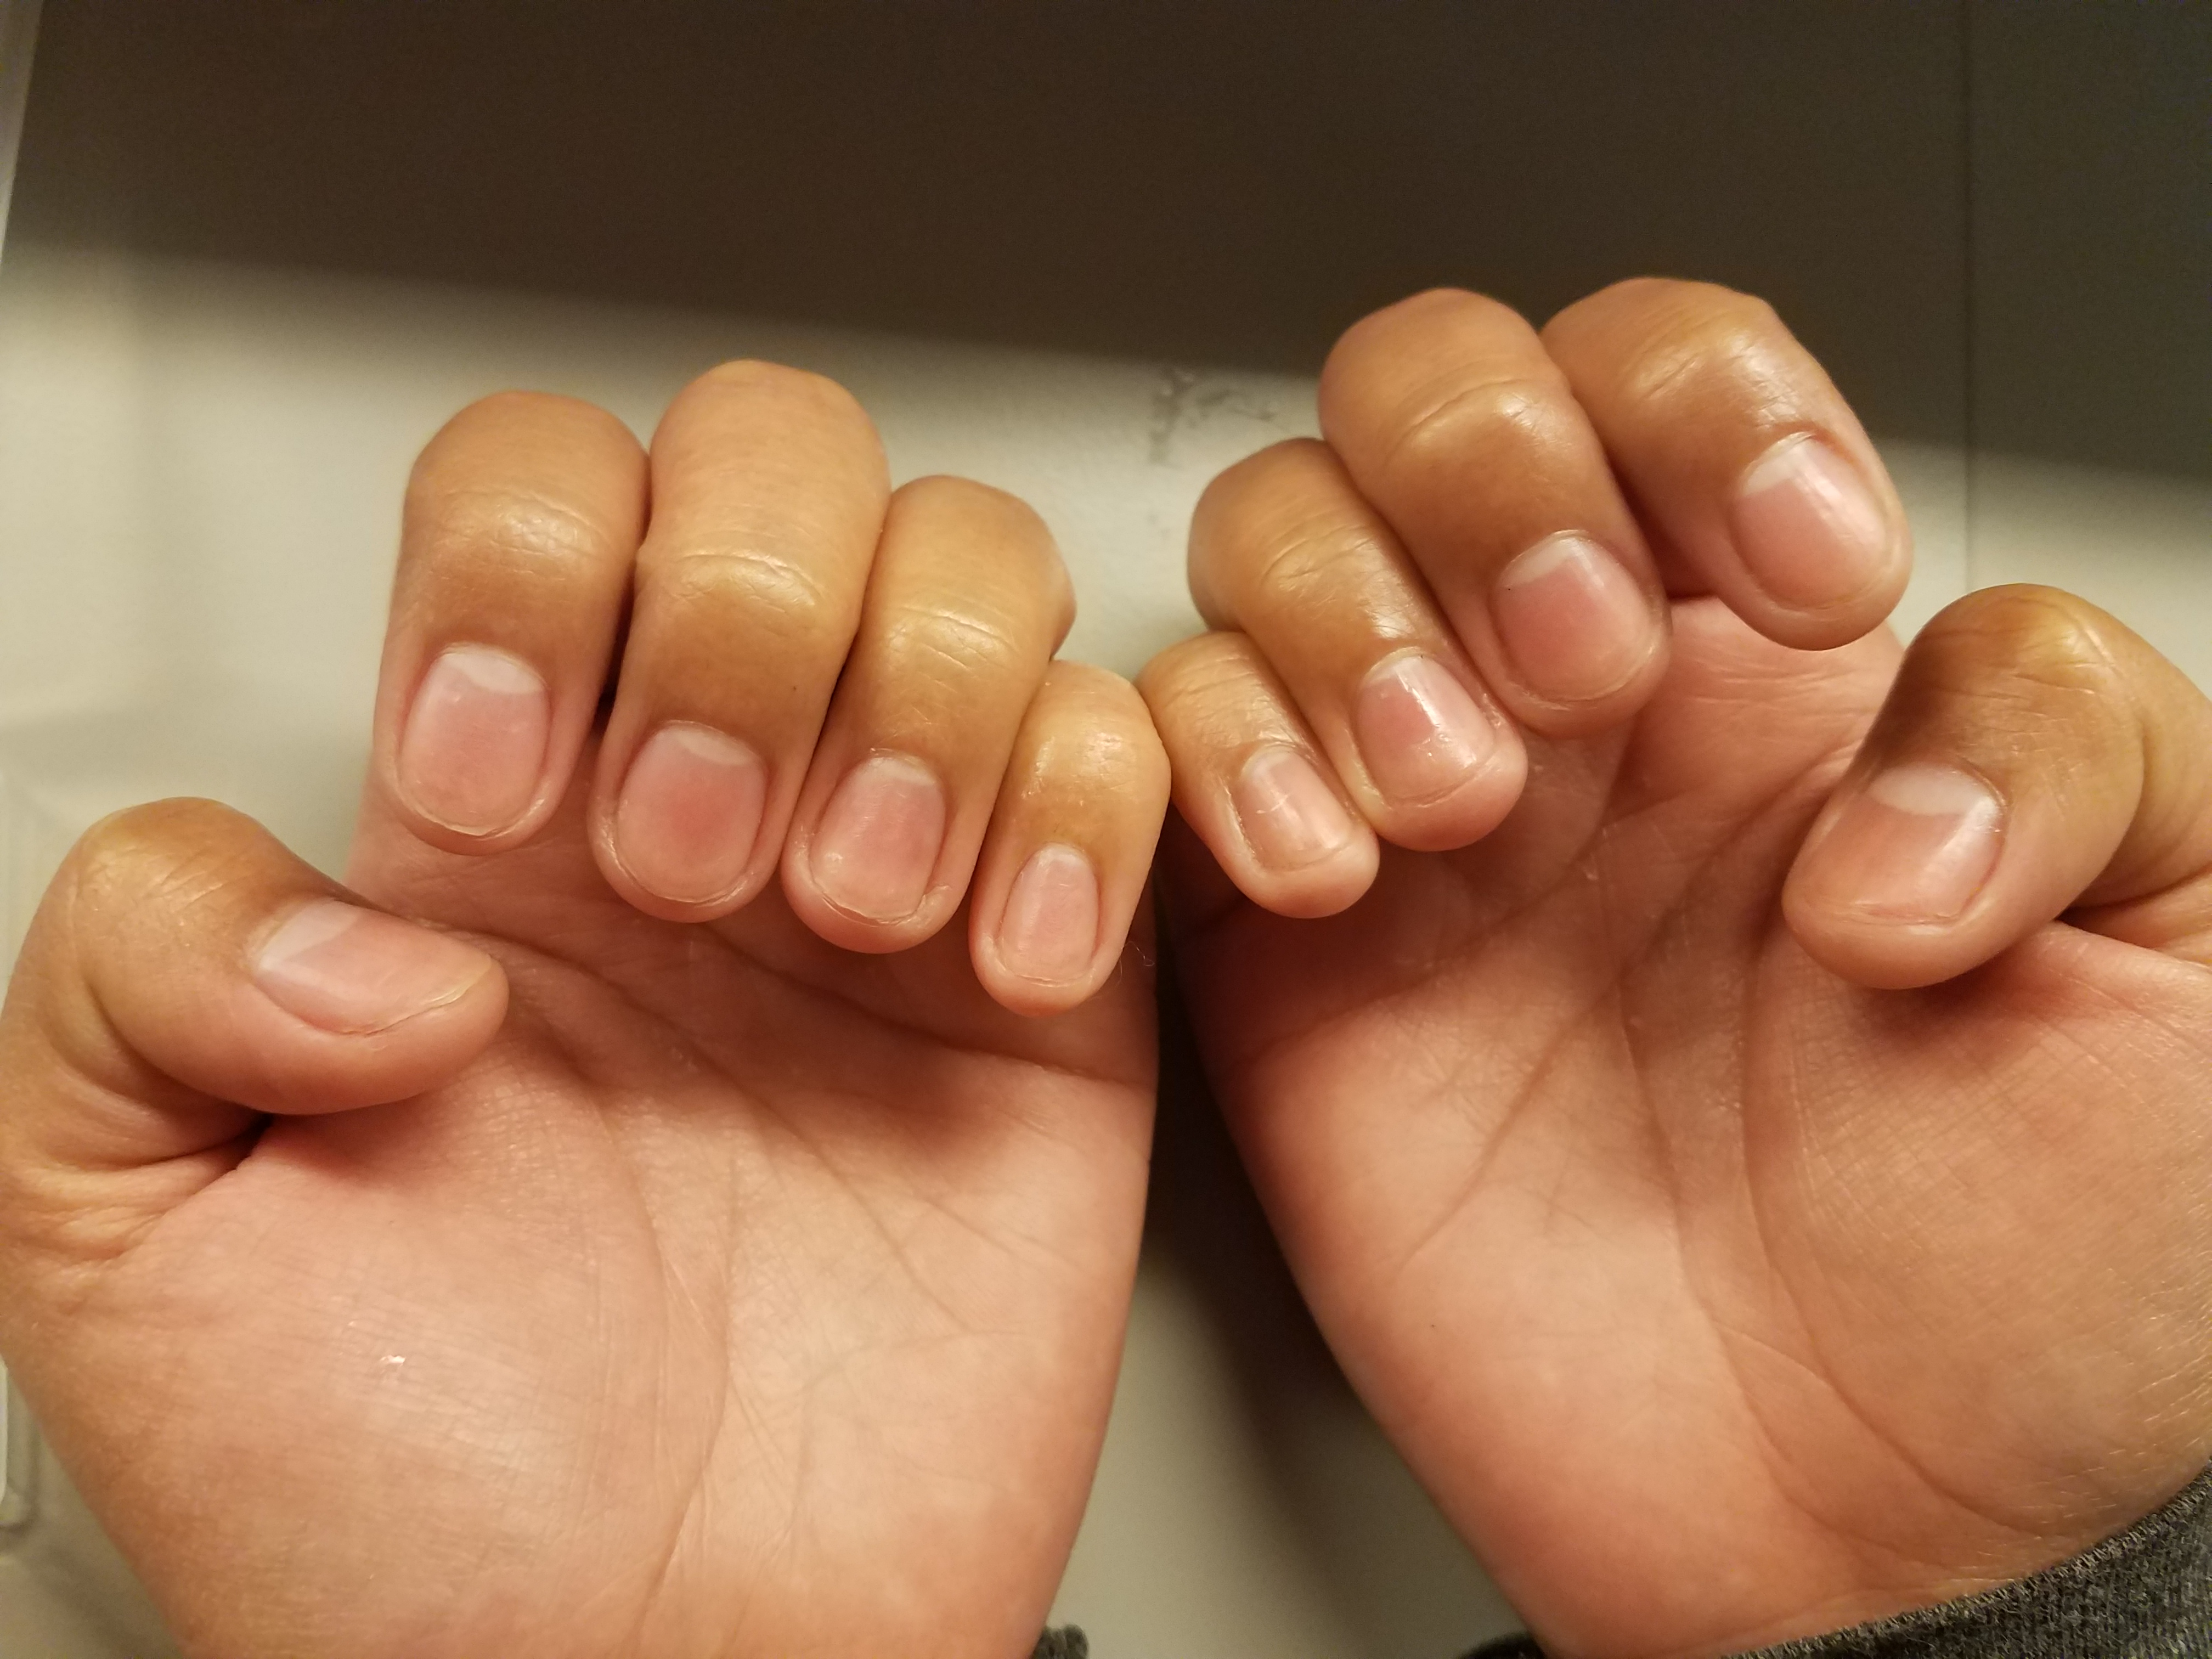 This week focused on giving manicures.